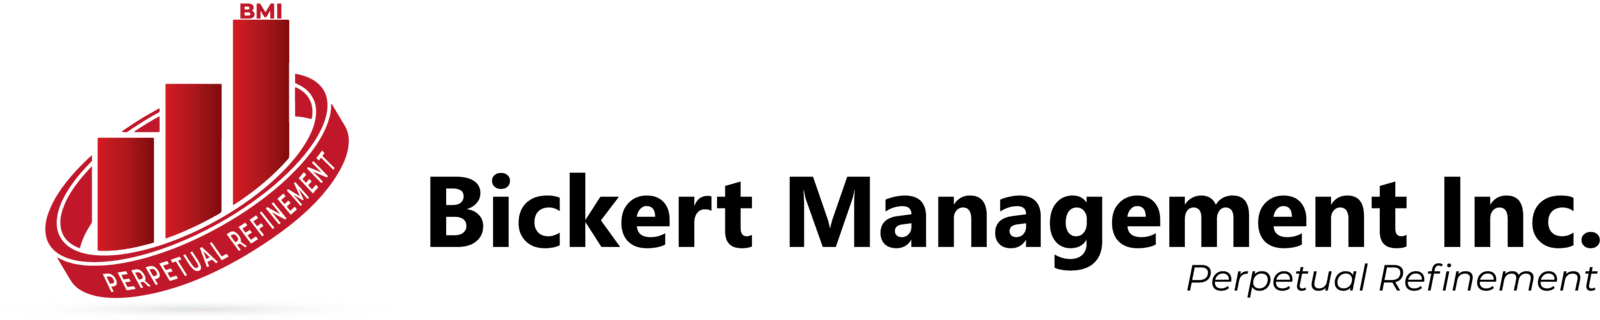 Bickert Management Inc.